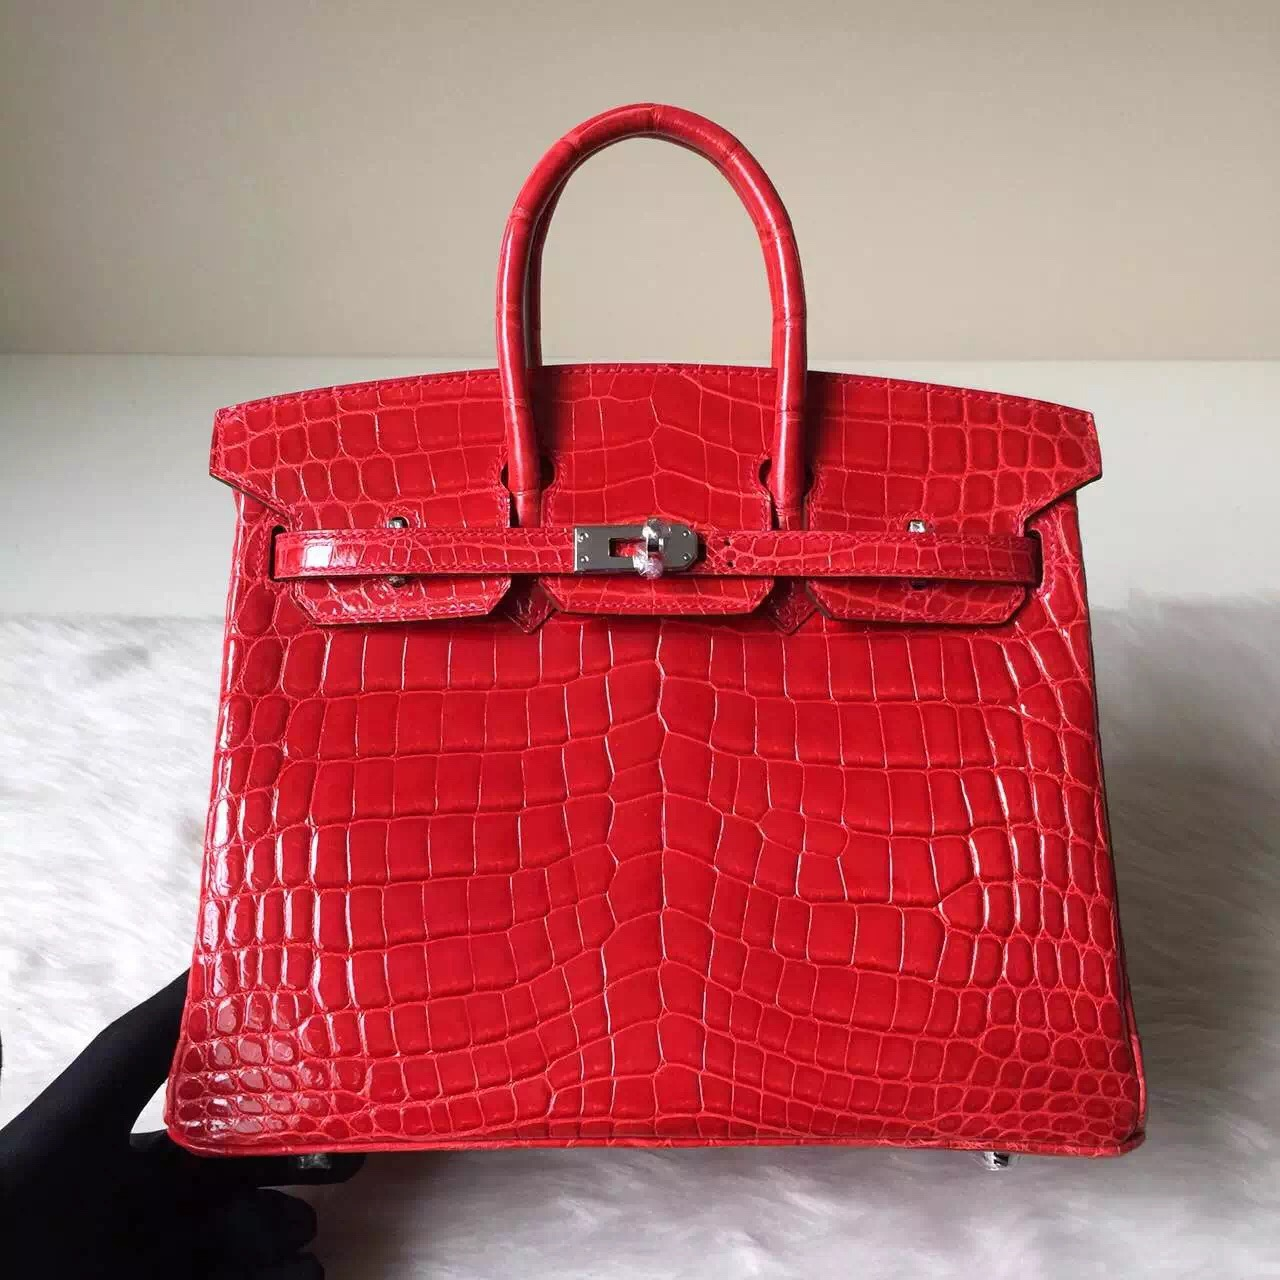 Wholesale Hermes Crocodile Shiny Leather Birkin Bag 25cm in CK95 Ferrari Red